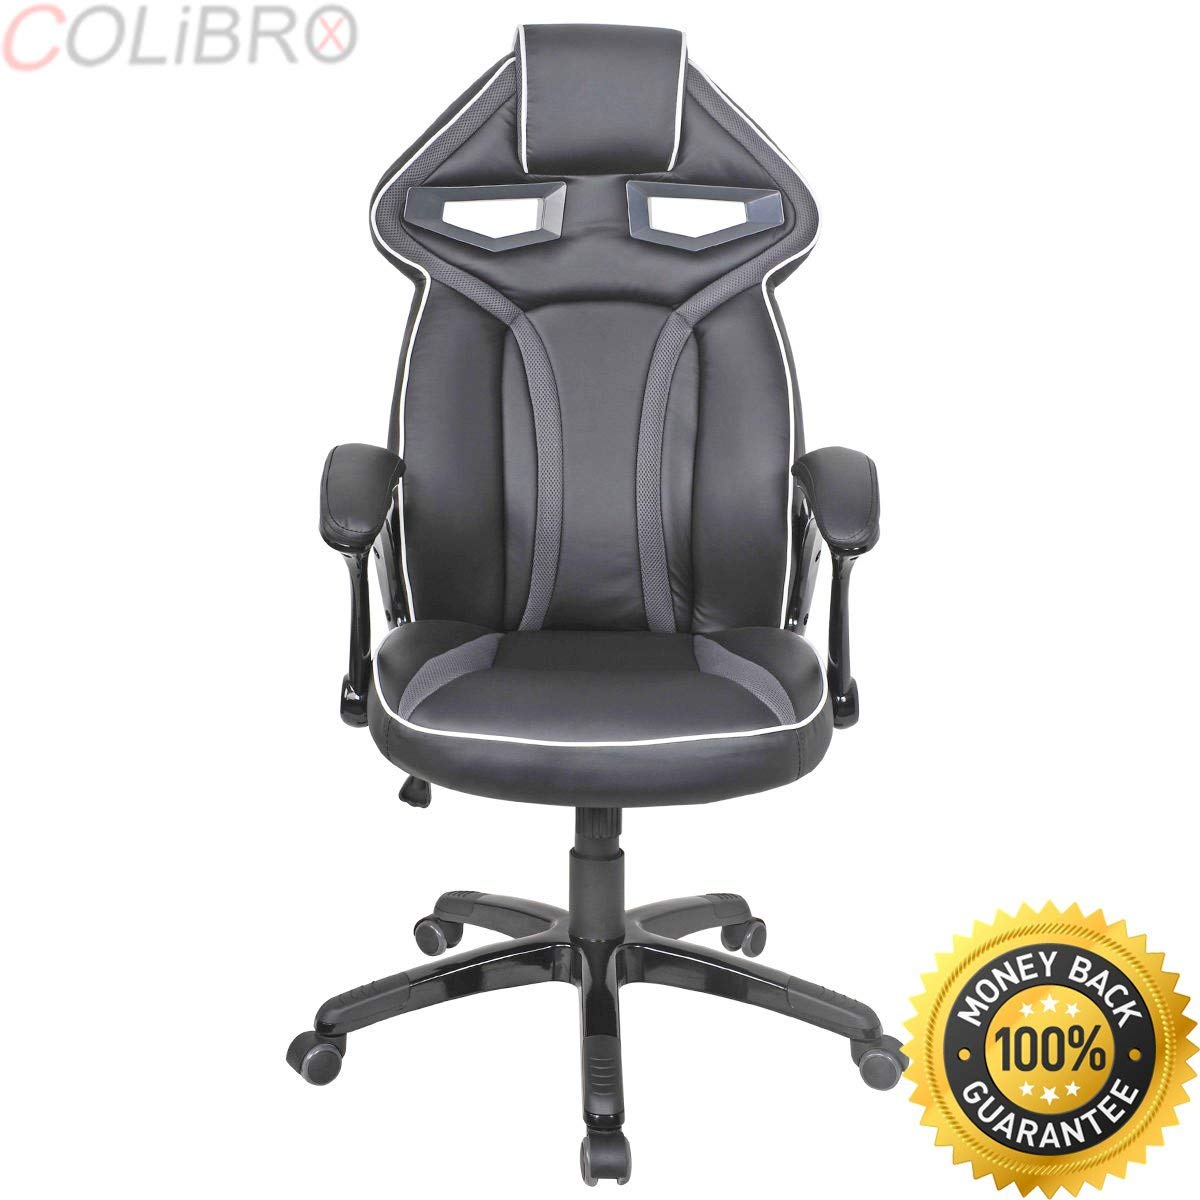 COLIBROX--Racing Bucket Seat Office Chair High Back Gaming Chair Desk Task Ergonomic New. high back race car style bucket seat office desk chair gaming chair. racing seat office chair. pc chair.